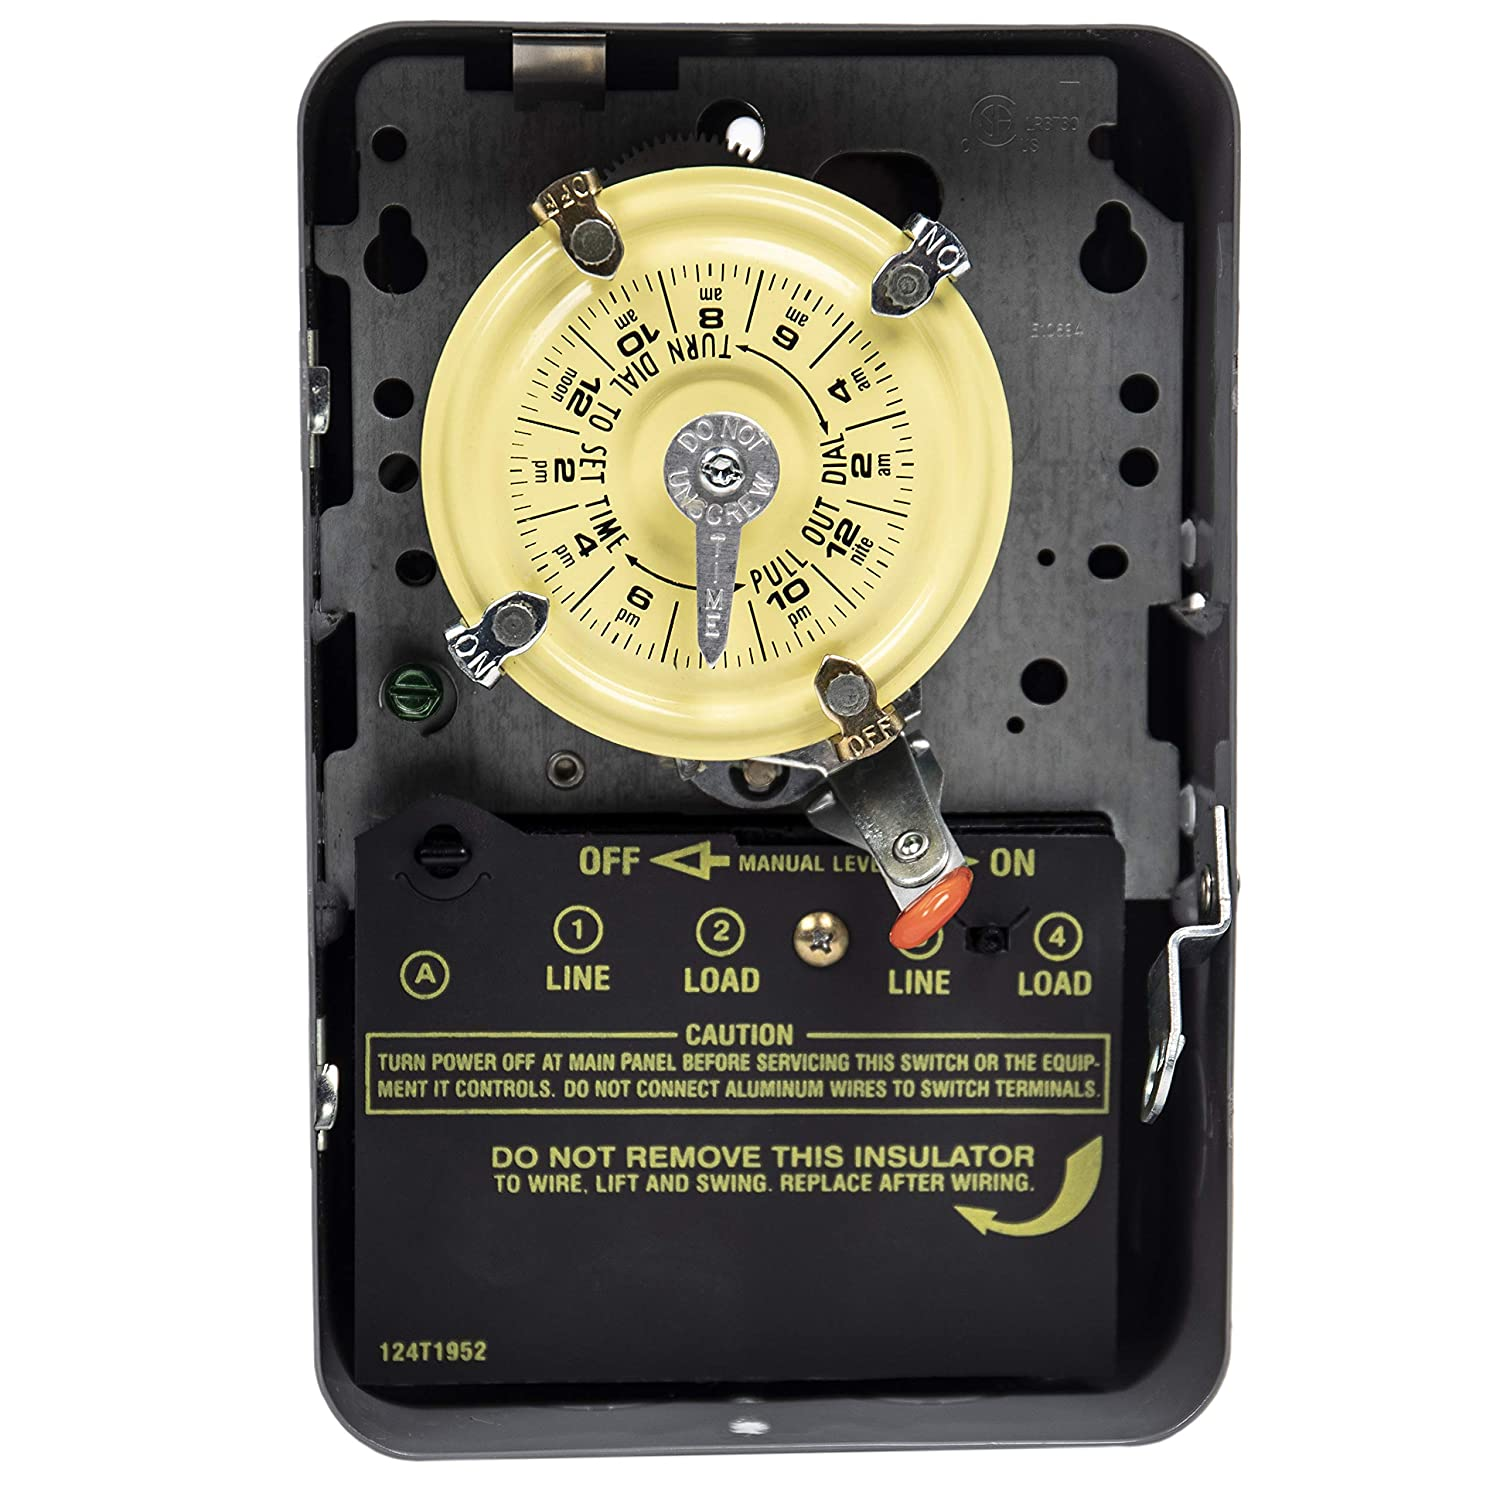 Intermatic WH40 Water Heater Timer, Steel, Gray, 7.75 x 5 x 3 inches,